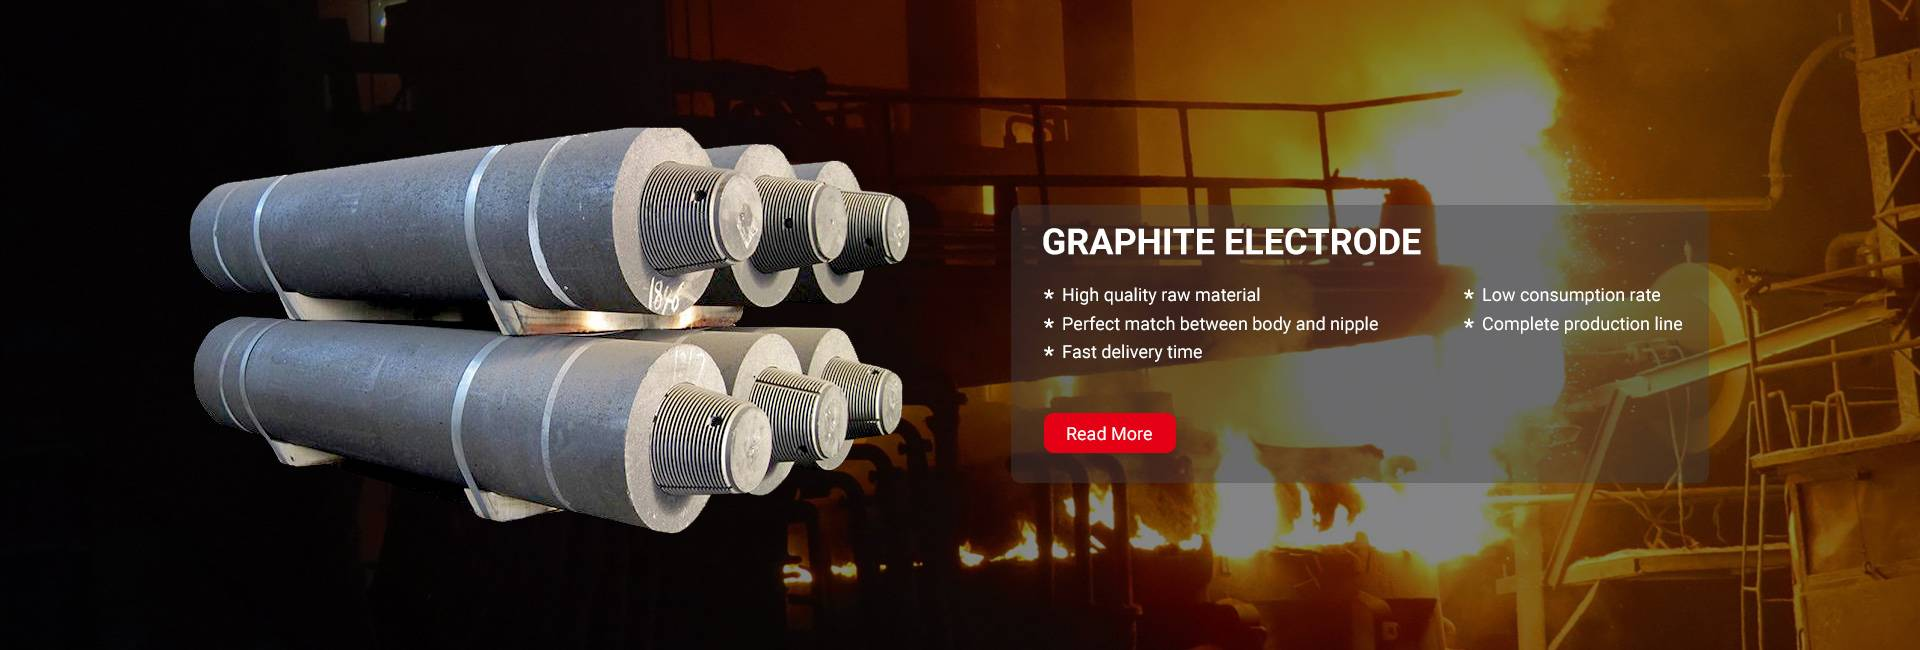 Graphite Electrode With Ultra High Power